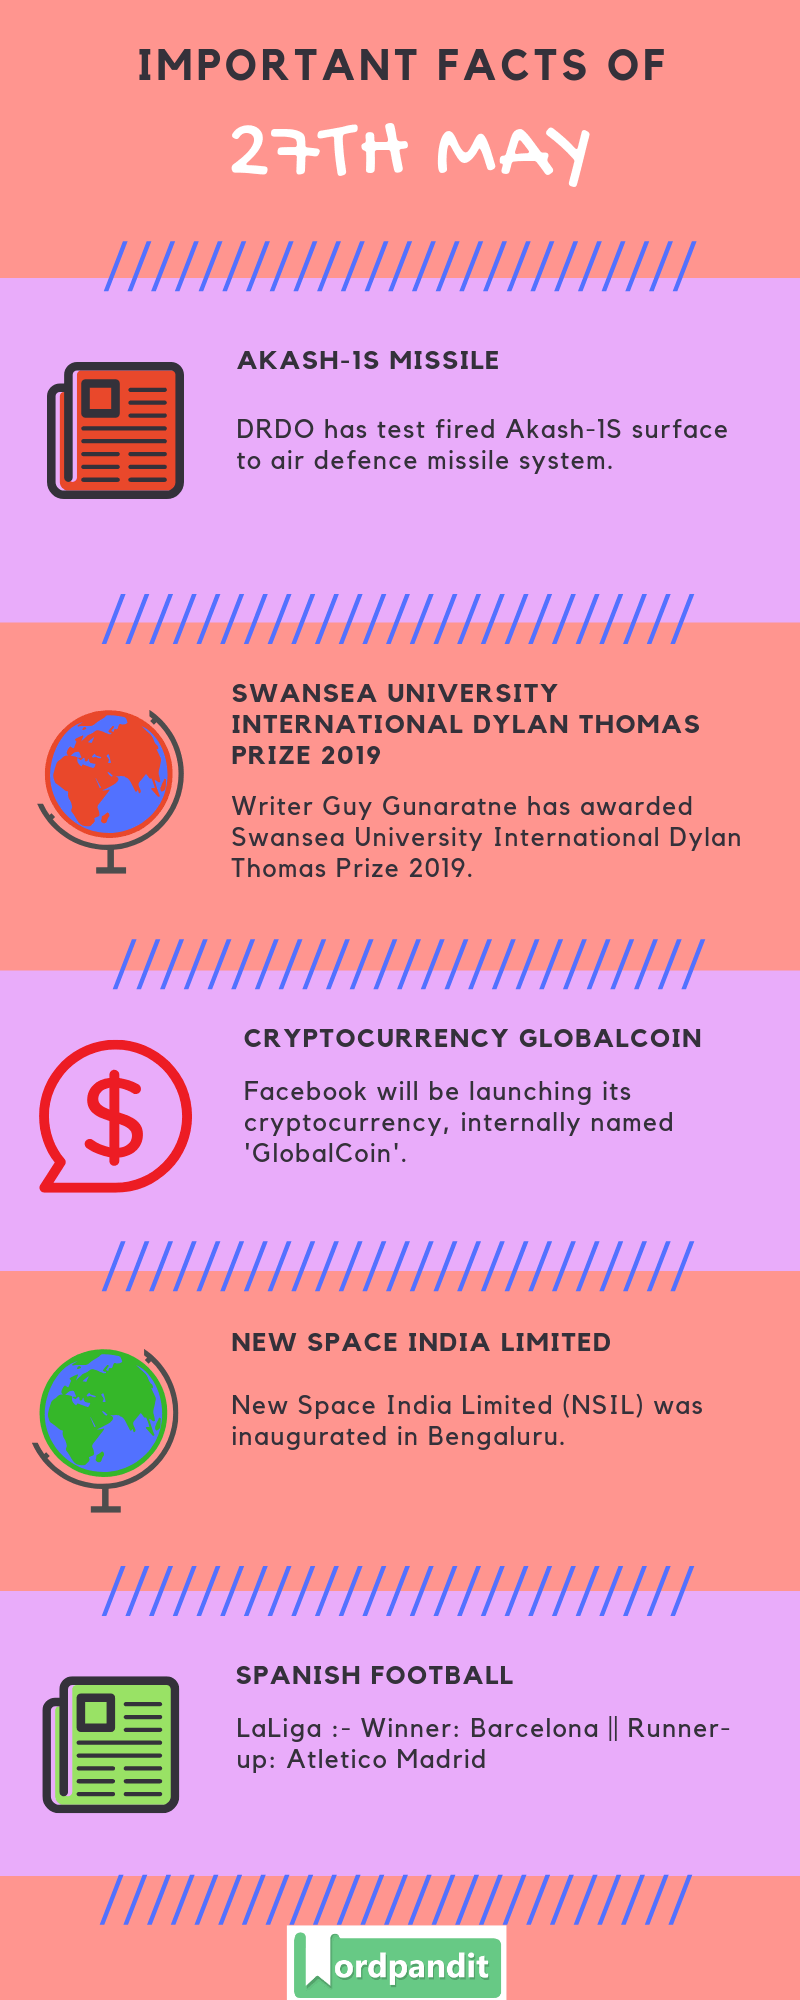 Daily Current Affairs 27 May 2019 Current Affairs Quiz 27 May 2019 Current Affairs Infographic